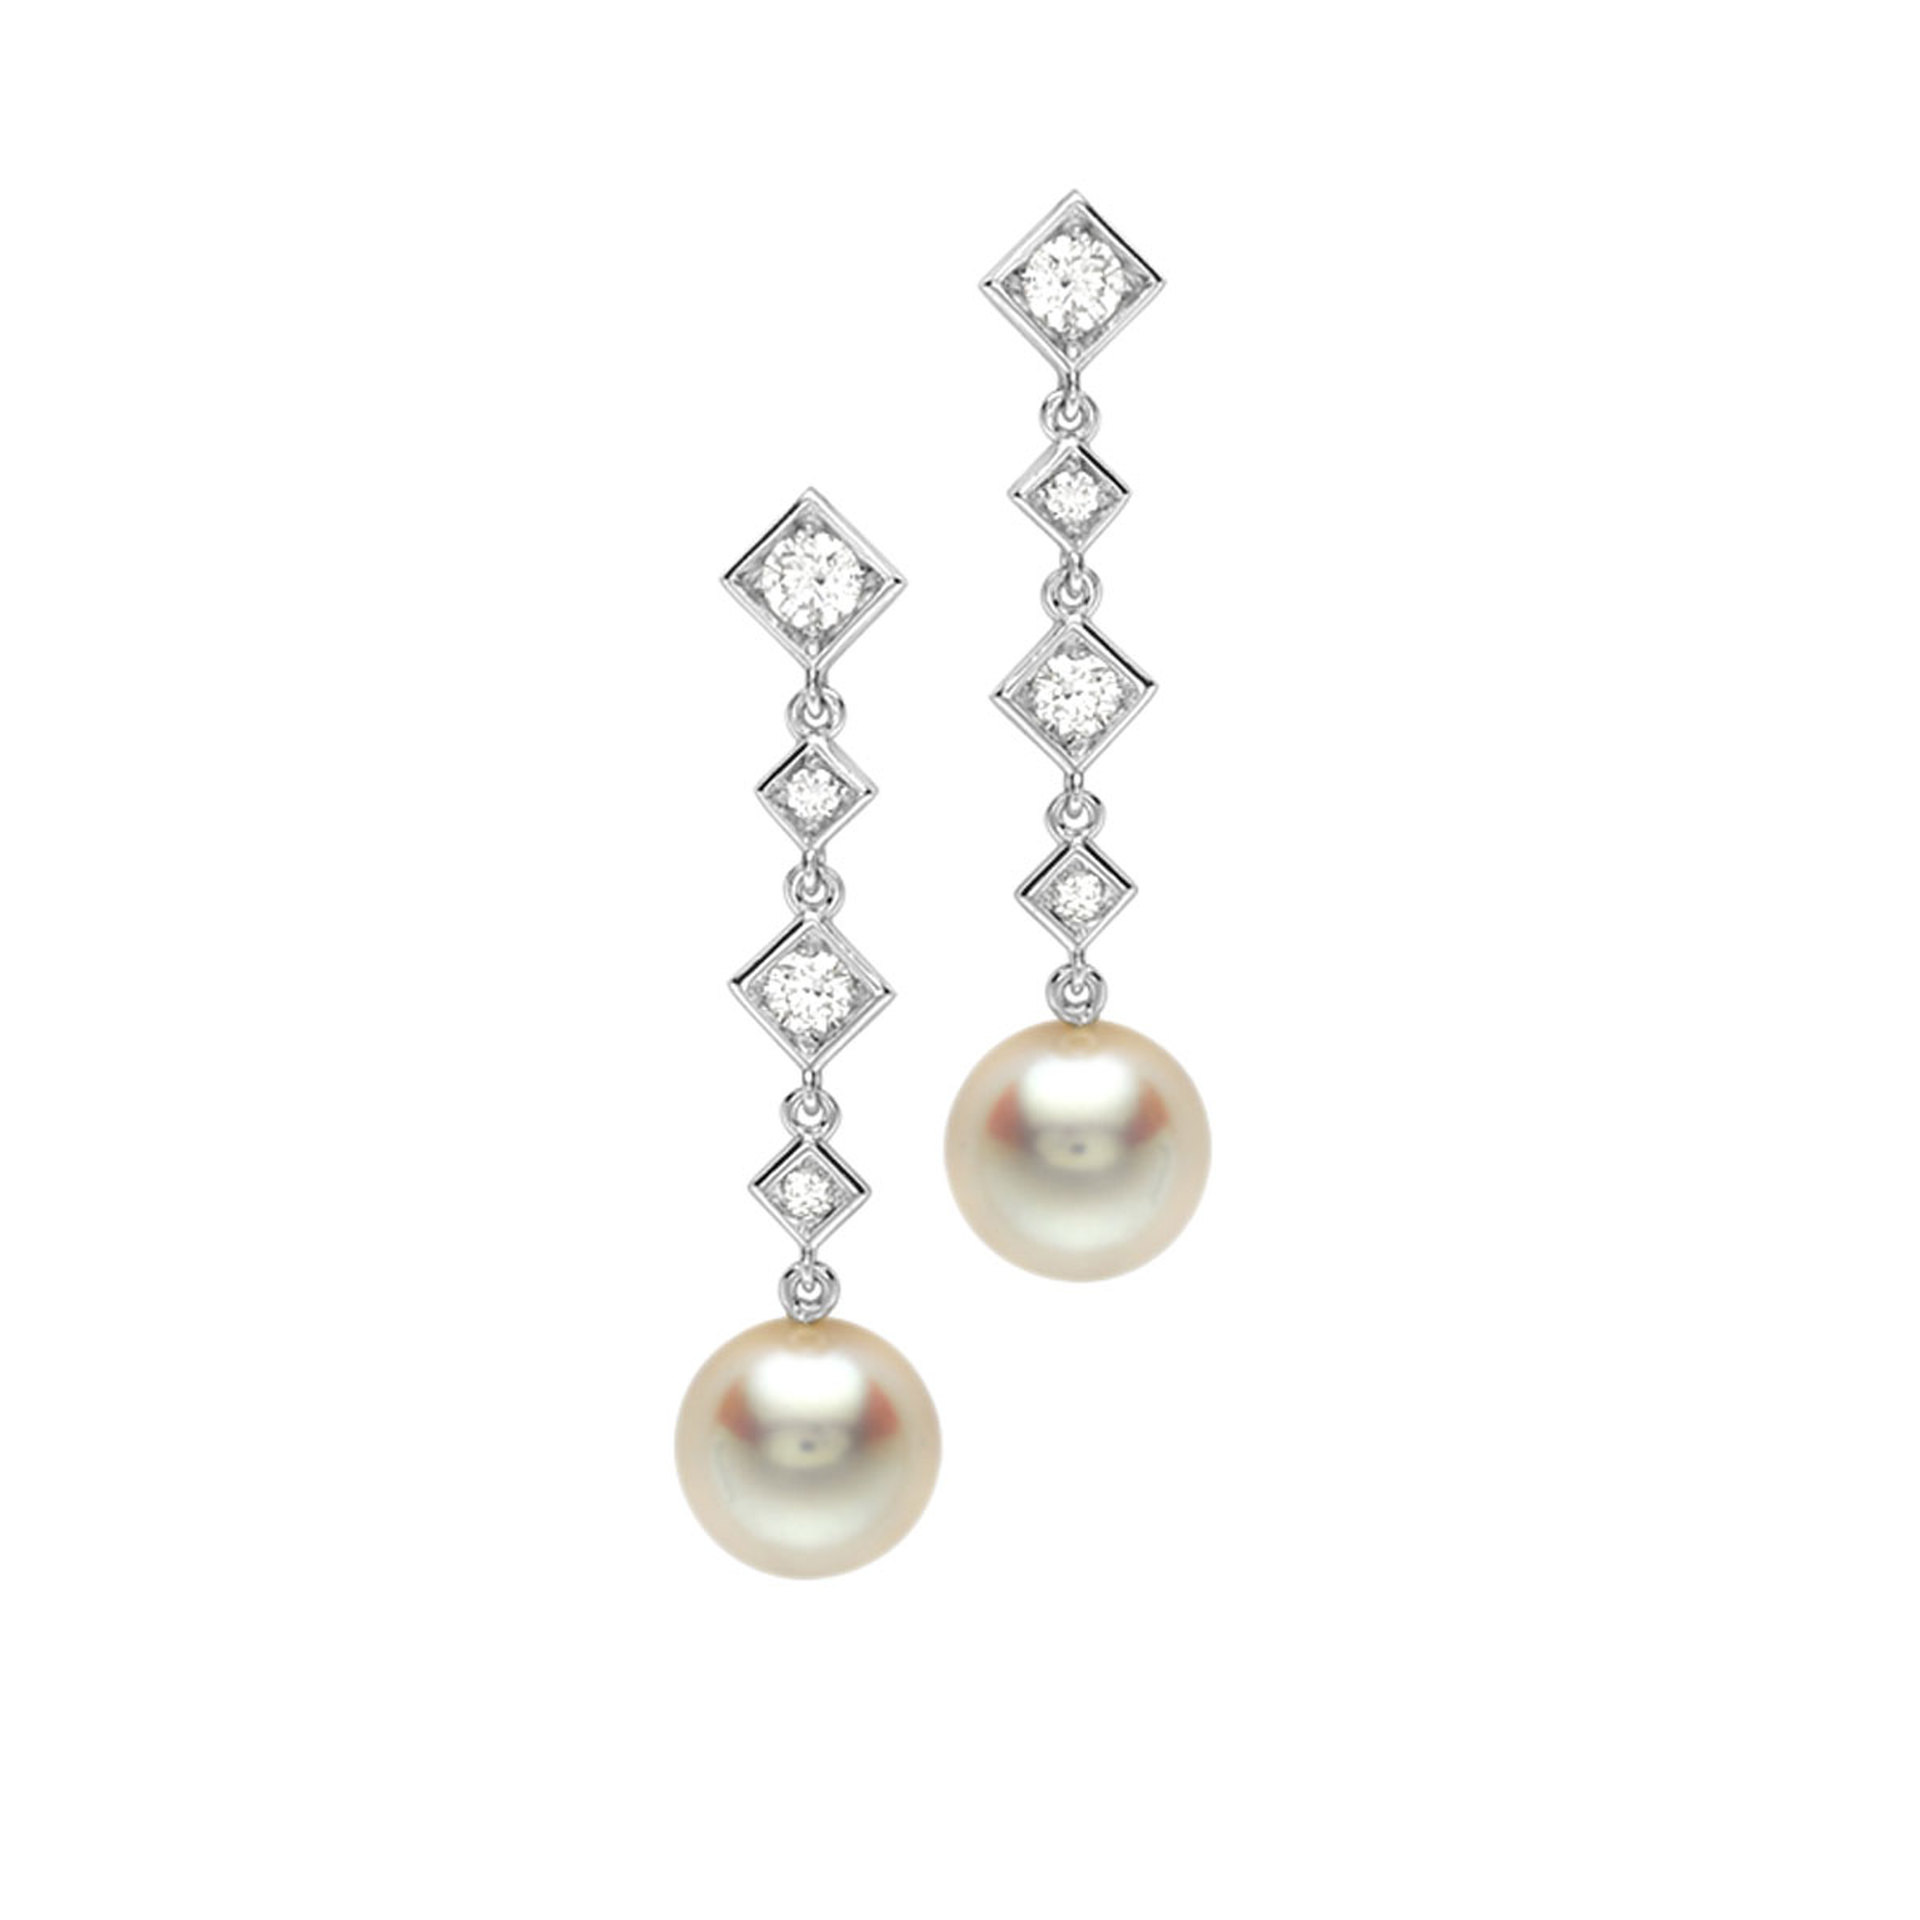 18ct White Gold, Pearl and Diamond Drop Earrings